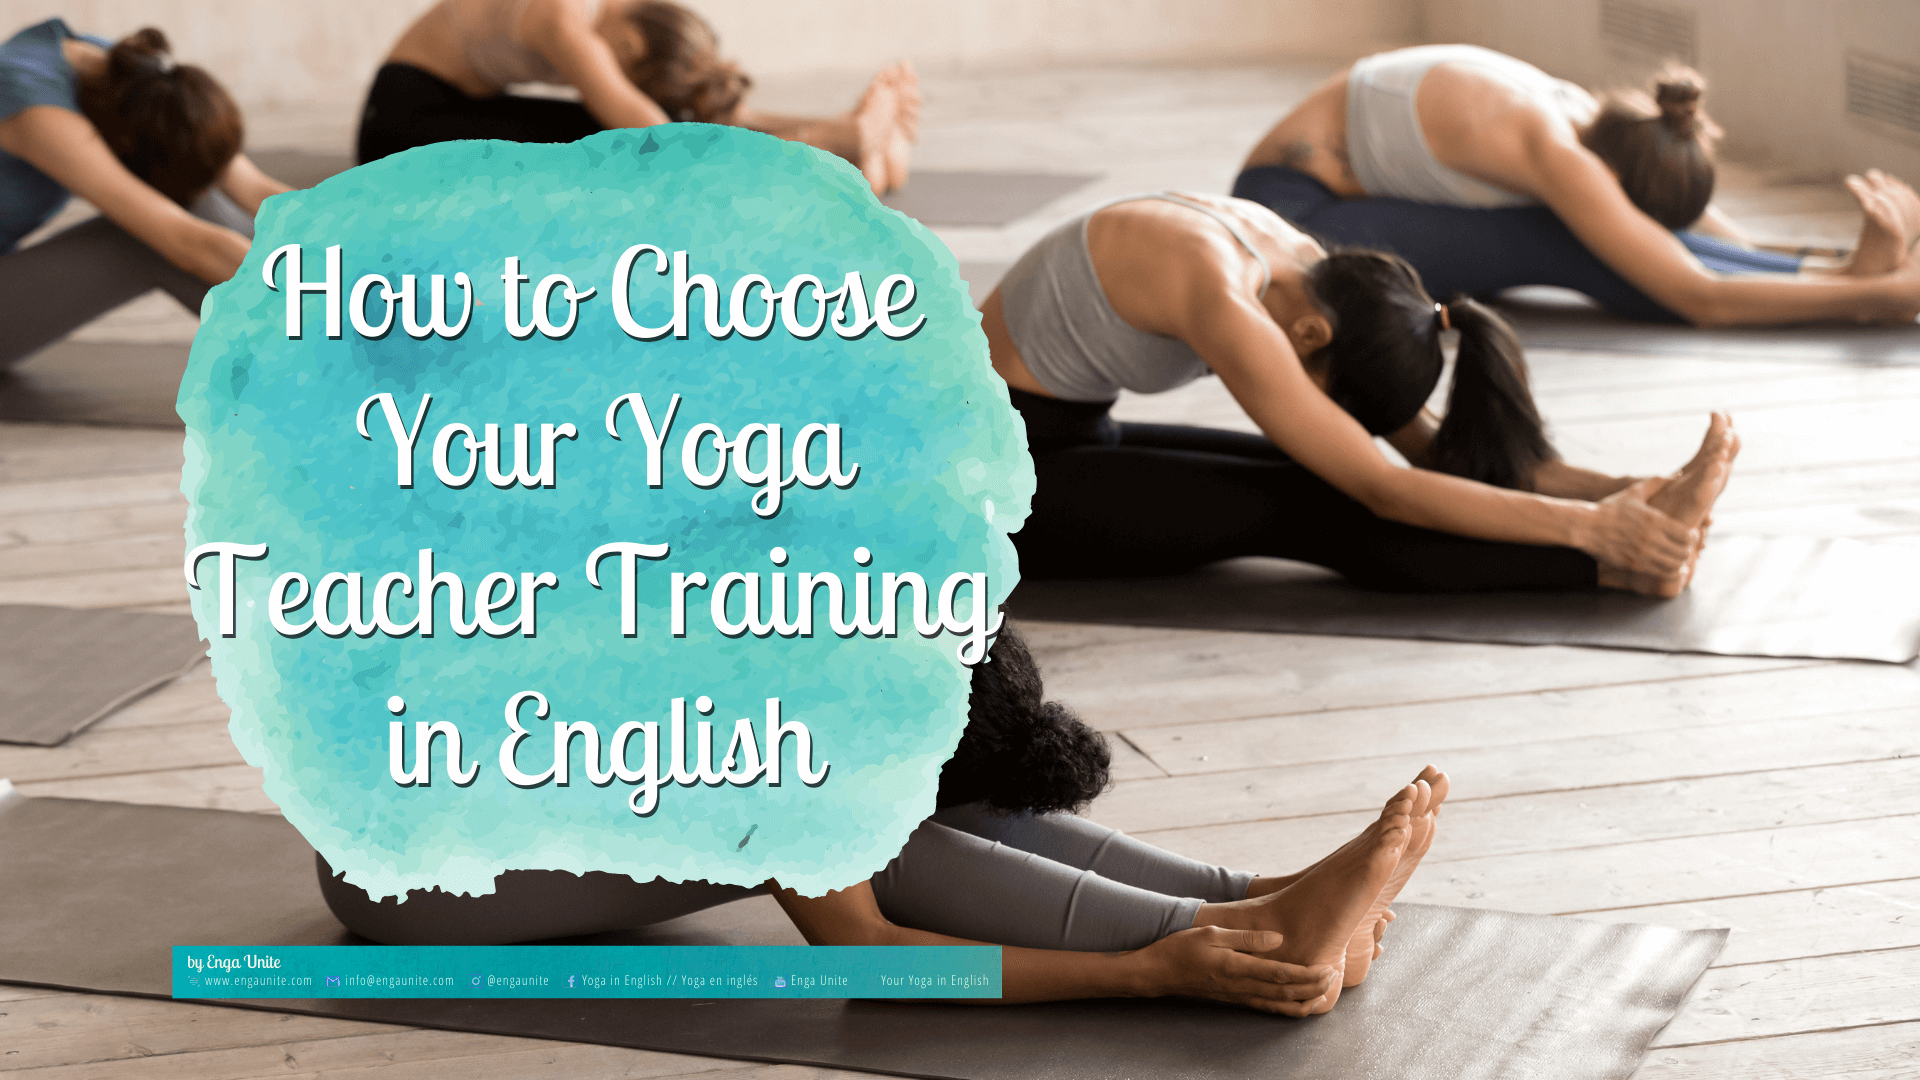 How to choose your yoga teacher training in English